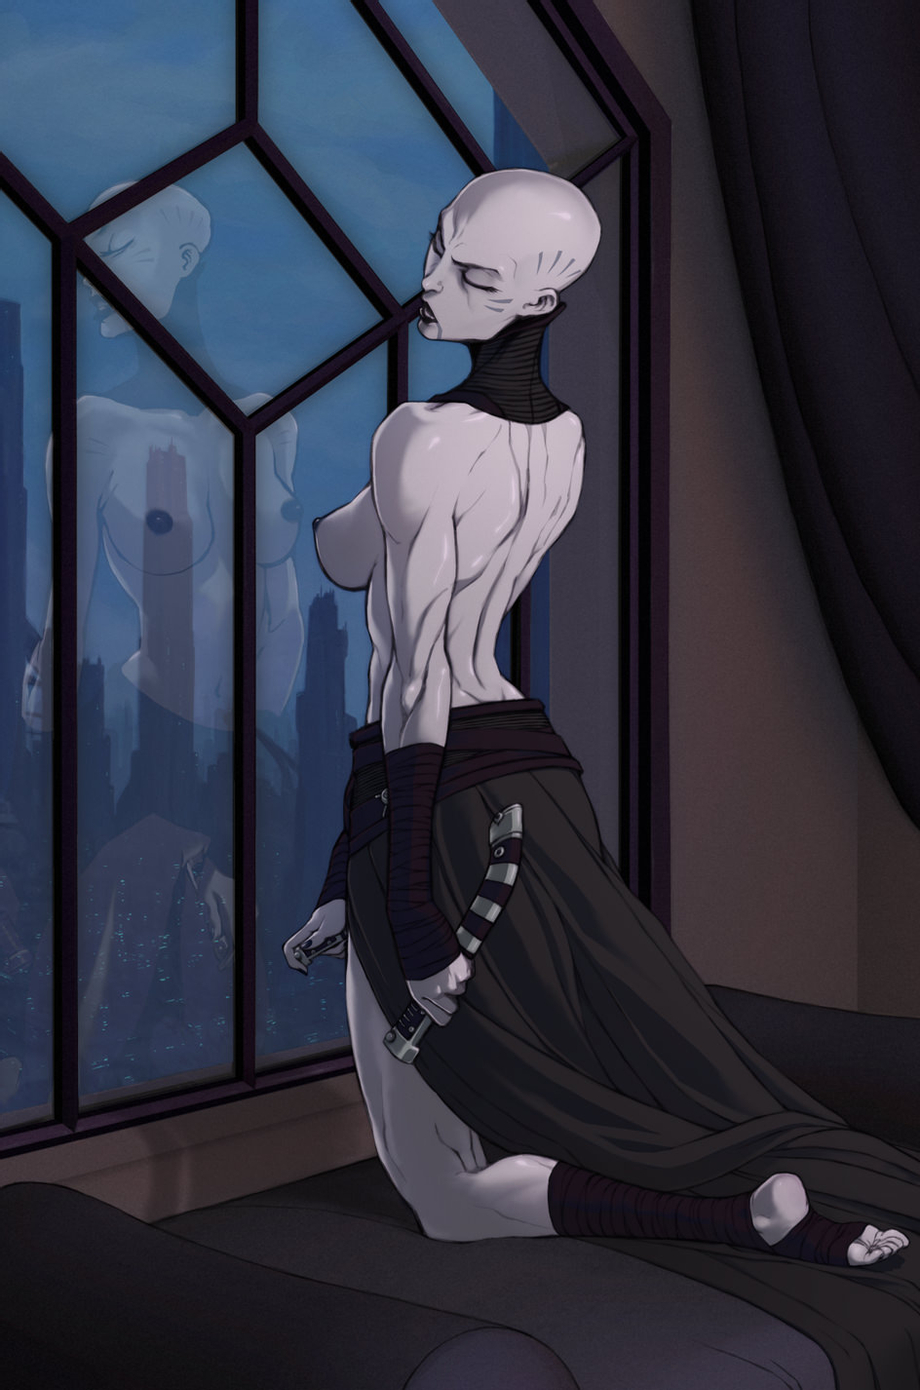 Asajj Ventress playing with her lightsabers (GSears) [Star Wars]   Softcore  Hentai XXX   Anime Hentai